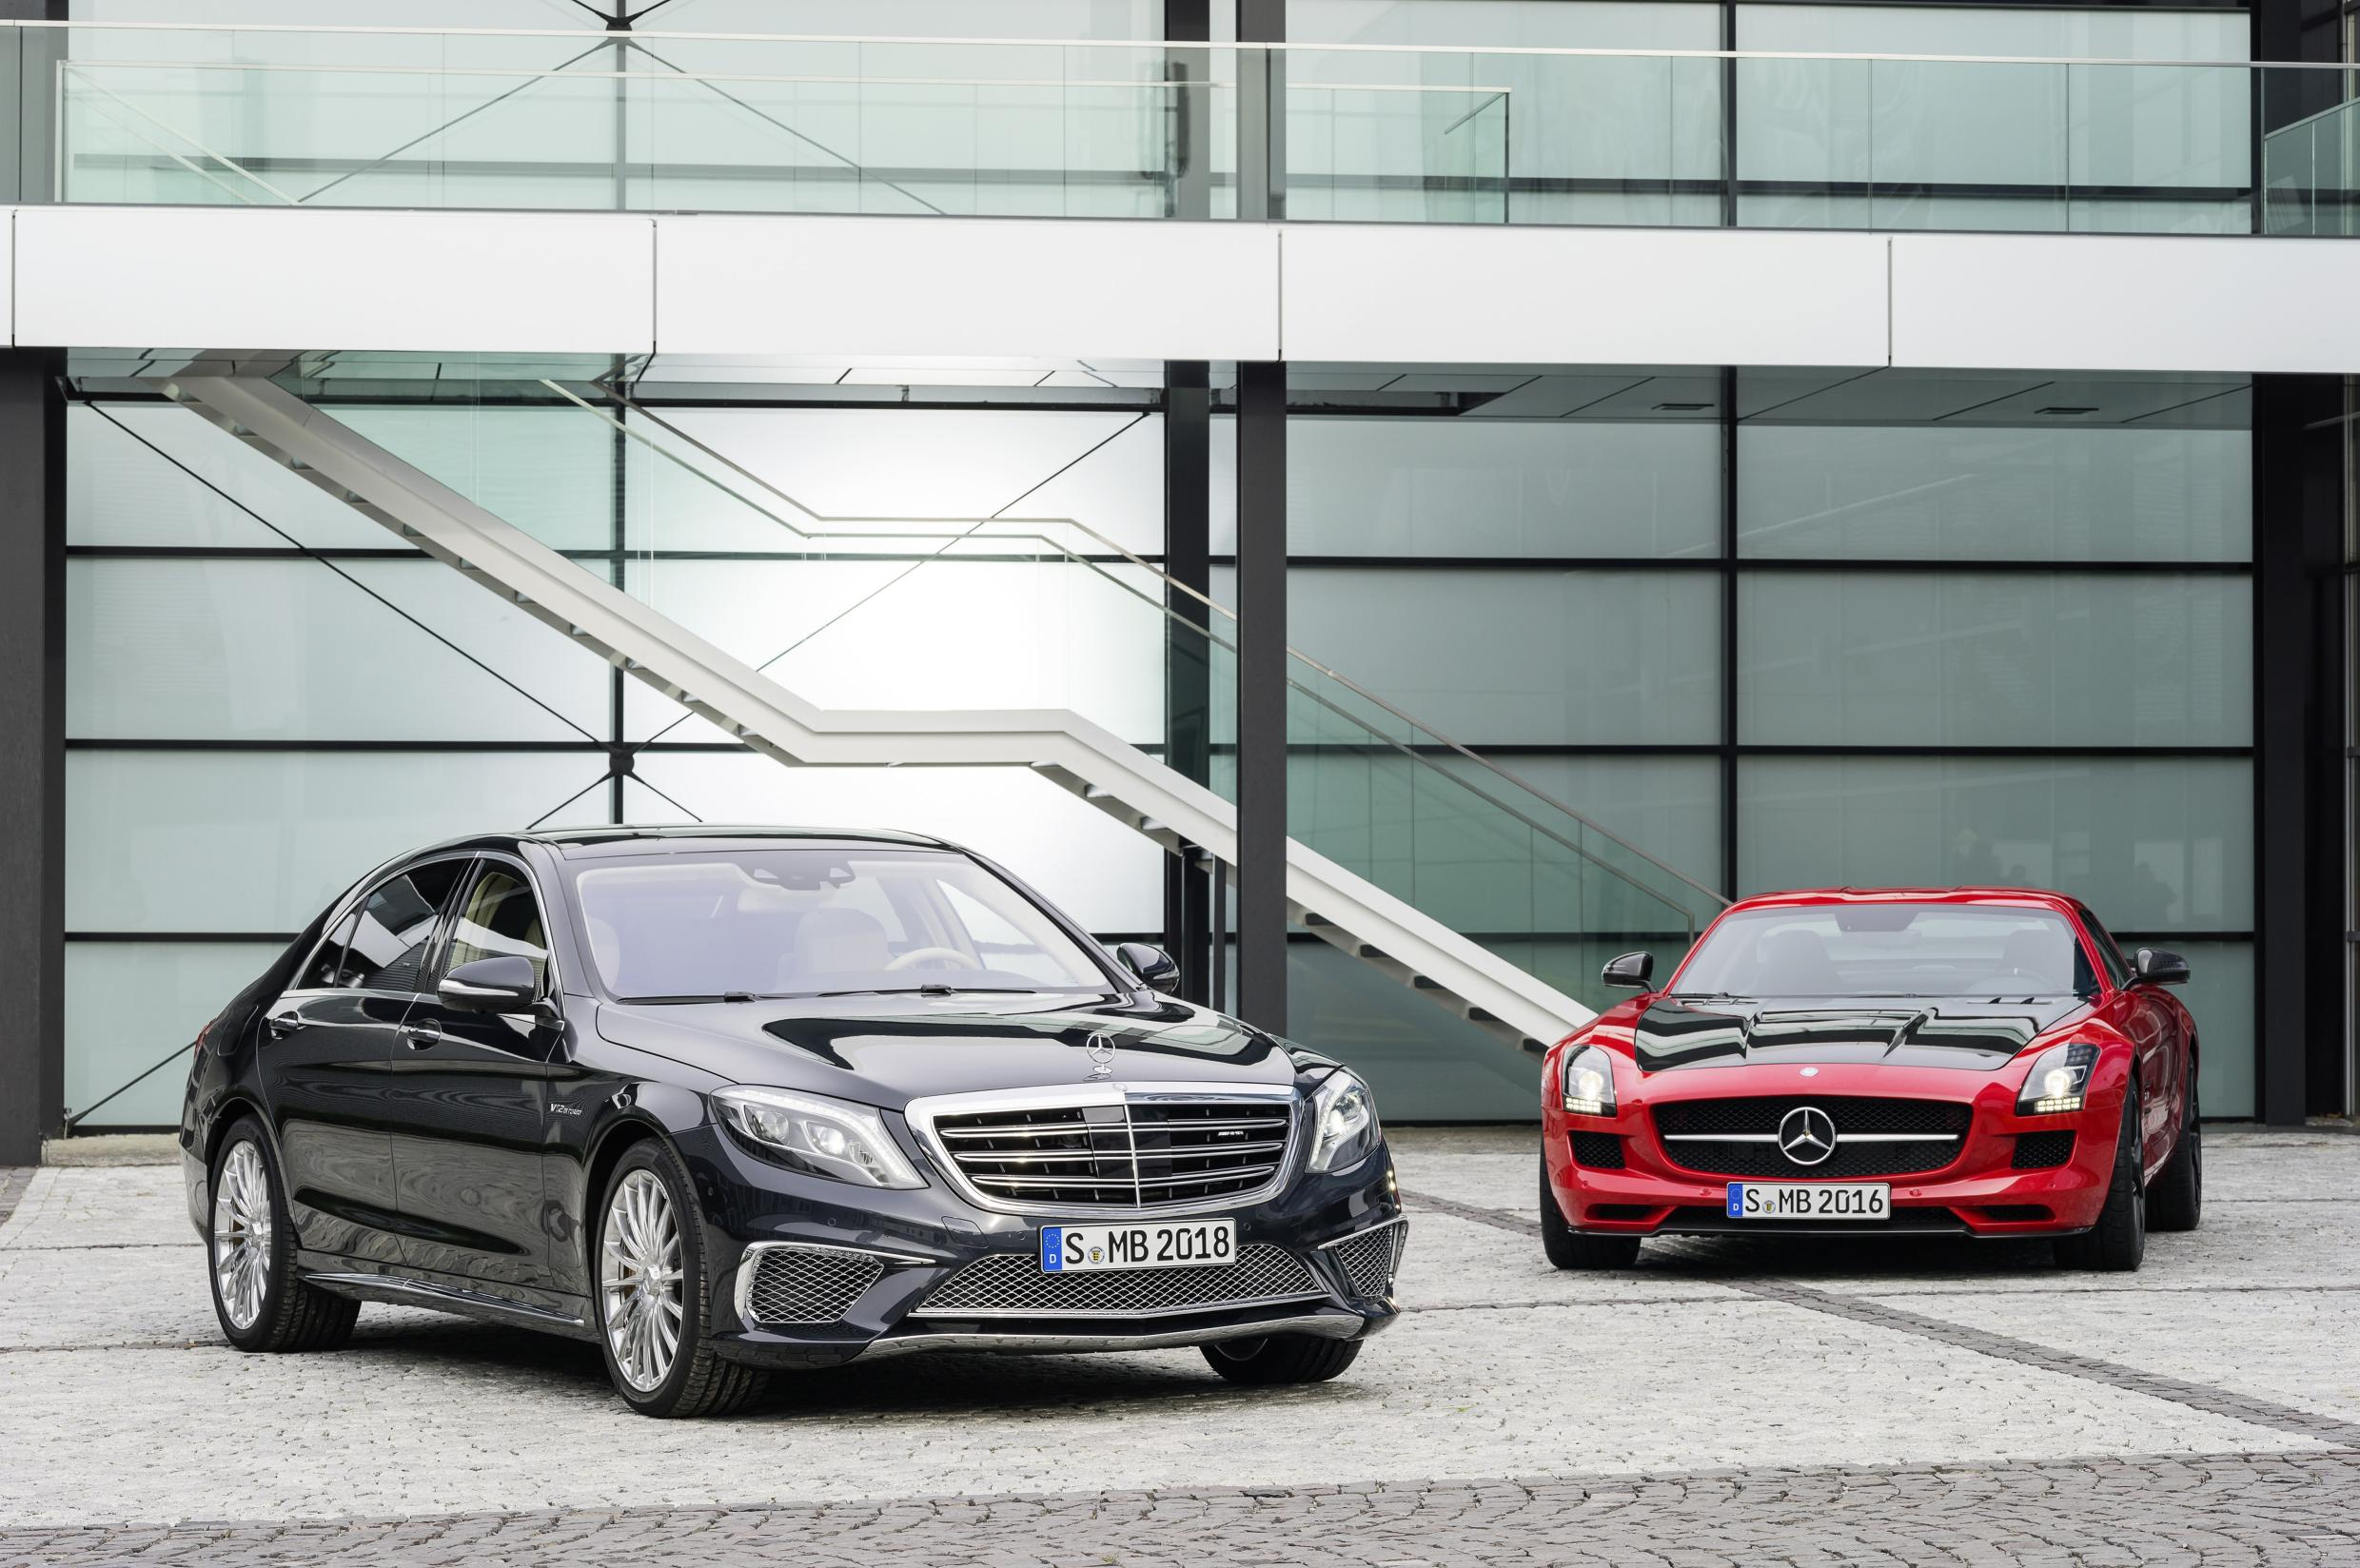 MERCEDES S65 AMG AND SLS AMG GT FINAL EDITION IN TOKYO AND LOS ANGELES